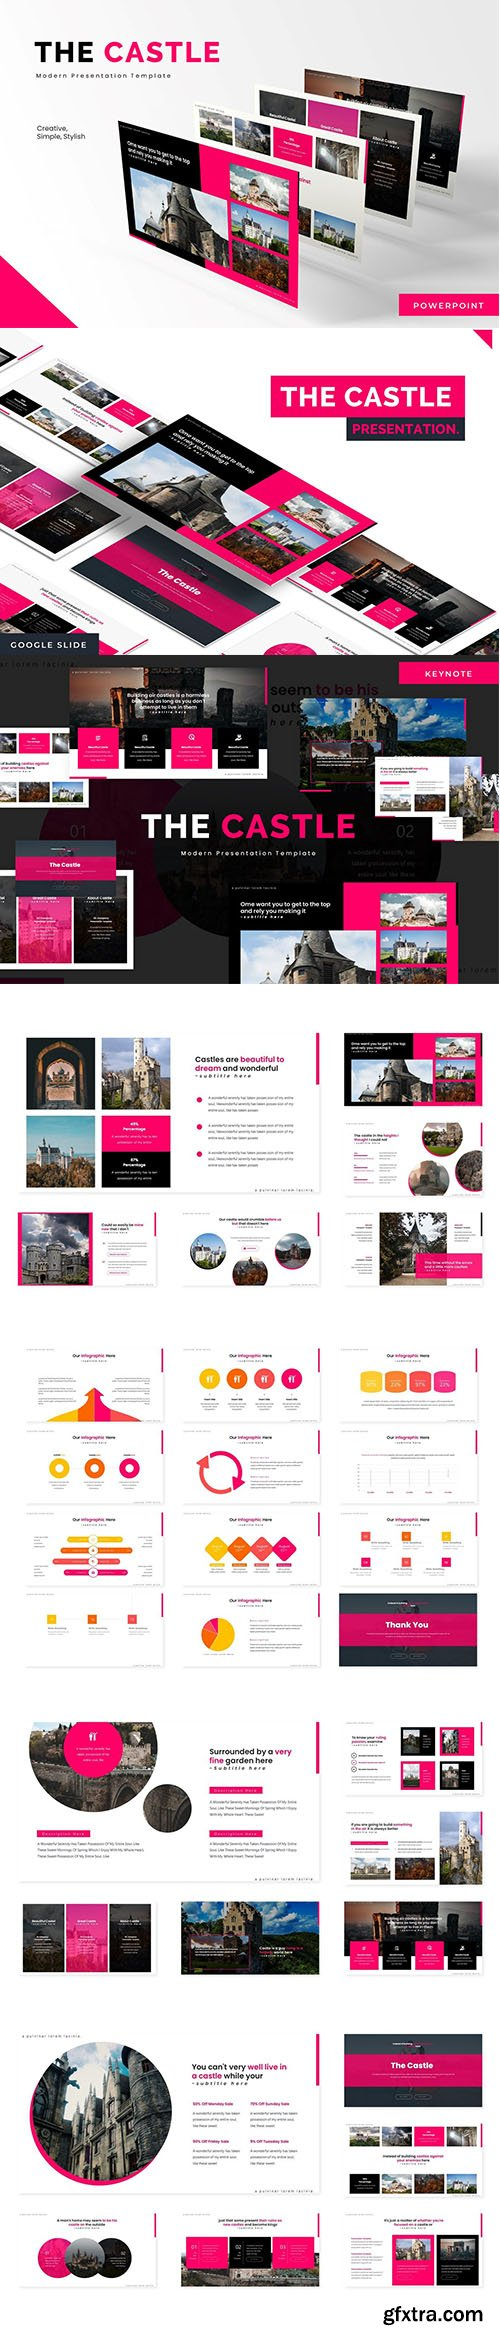 The Castle - Powerpoint Template, Keynote Template and Google Slide Template